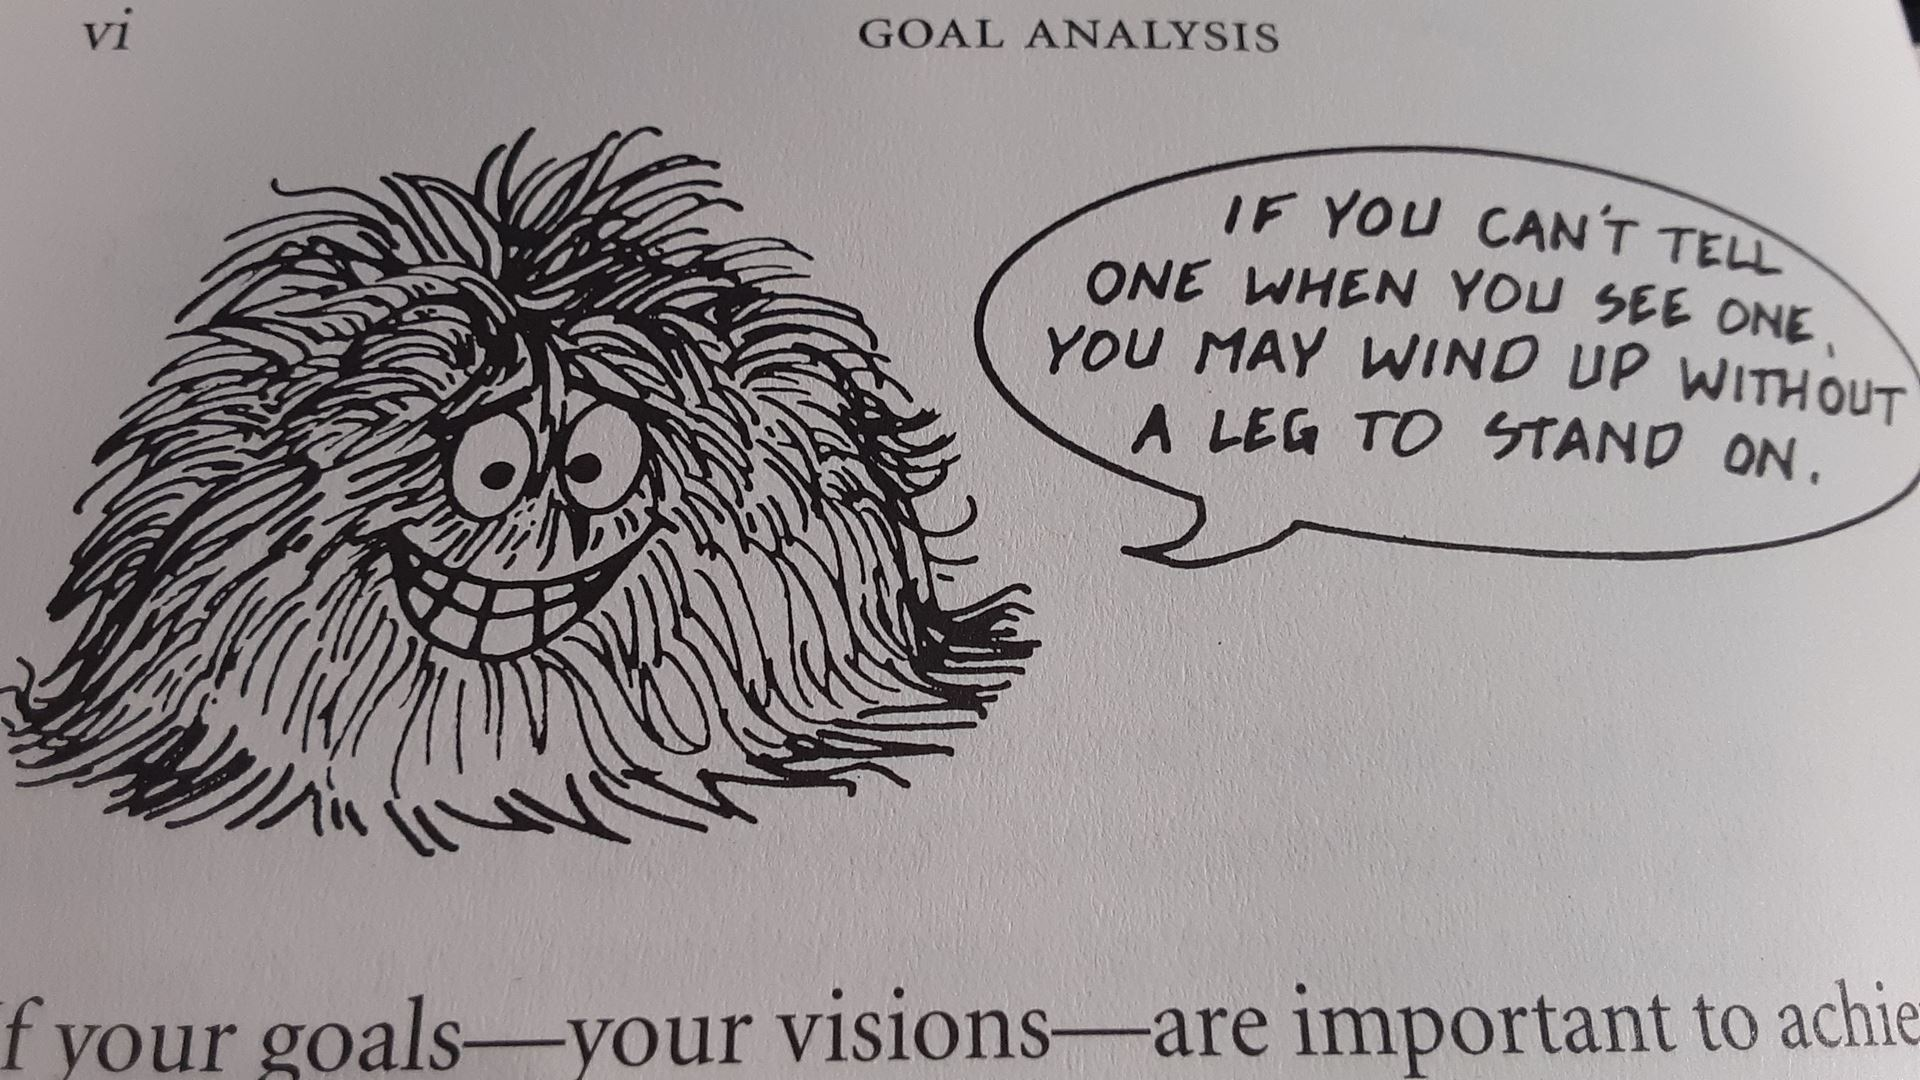 'Fuzzy' Image from the Preface of Goal Analysis by Robert F. Mager